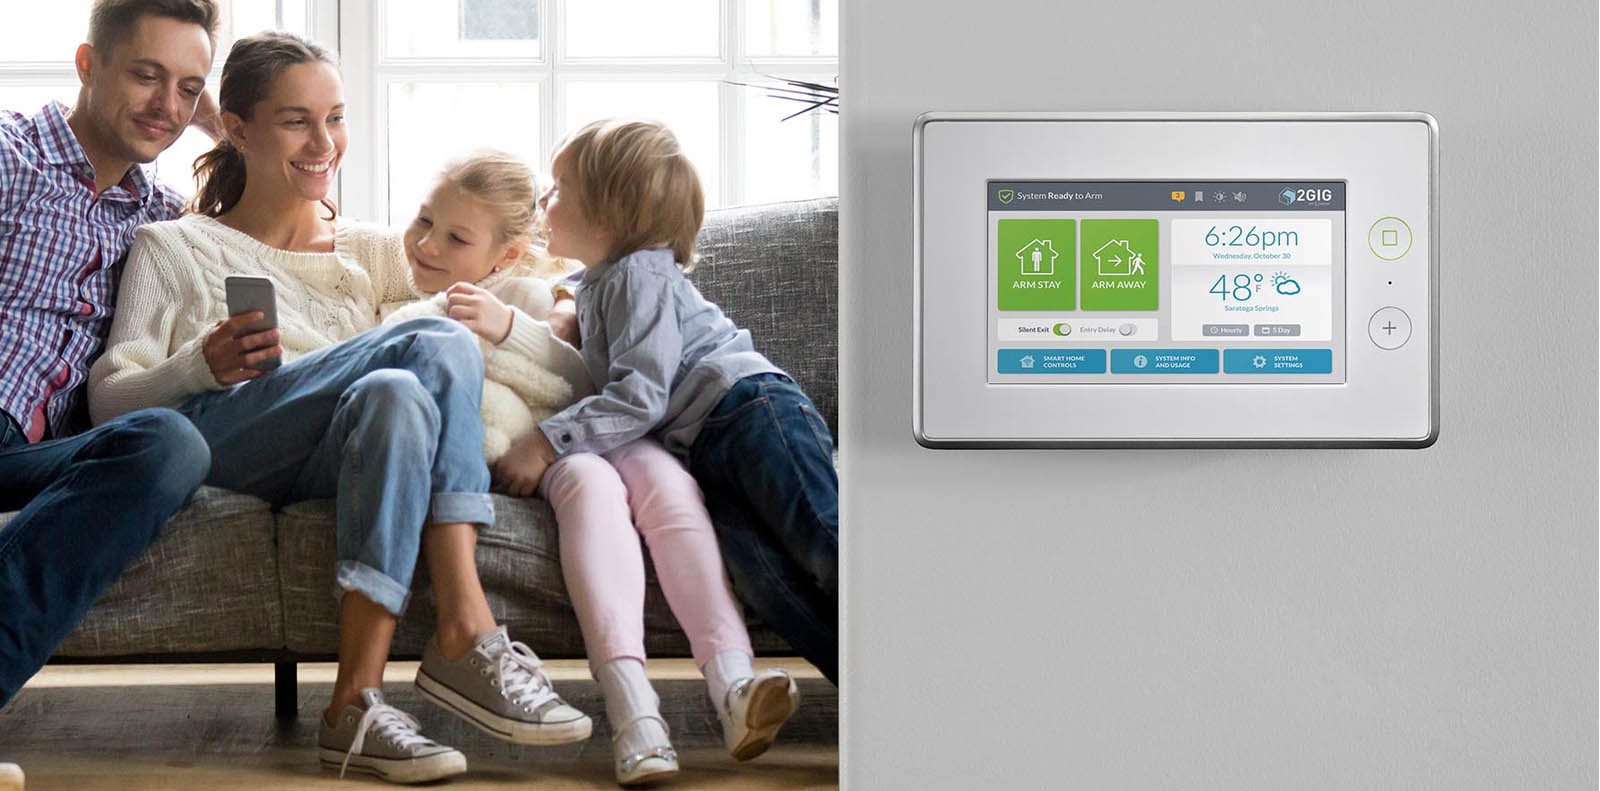 security company Chicago offering alarm security- happy family on couch controlling alarm from phone application